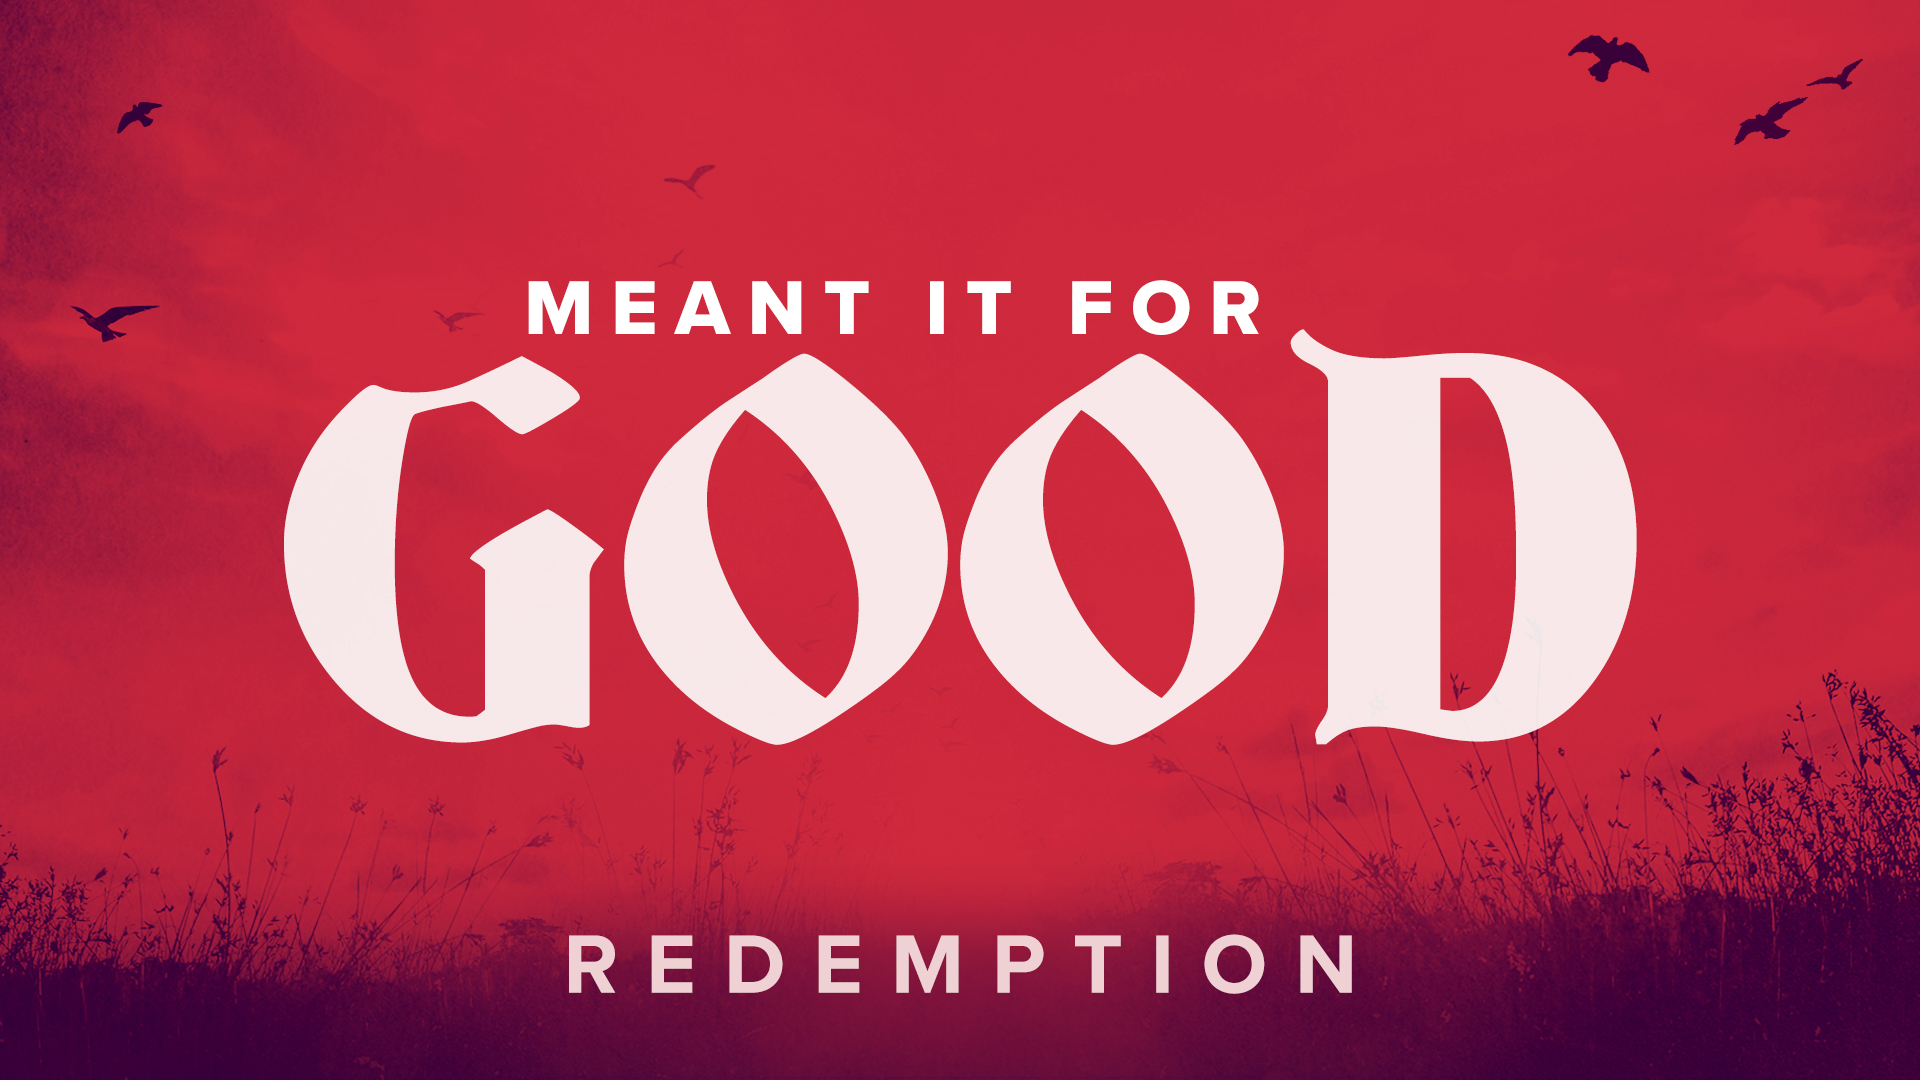 Meant It For Good [7] -- Redemption | Passing Tests Pays Off